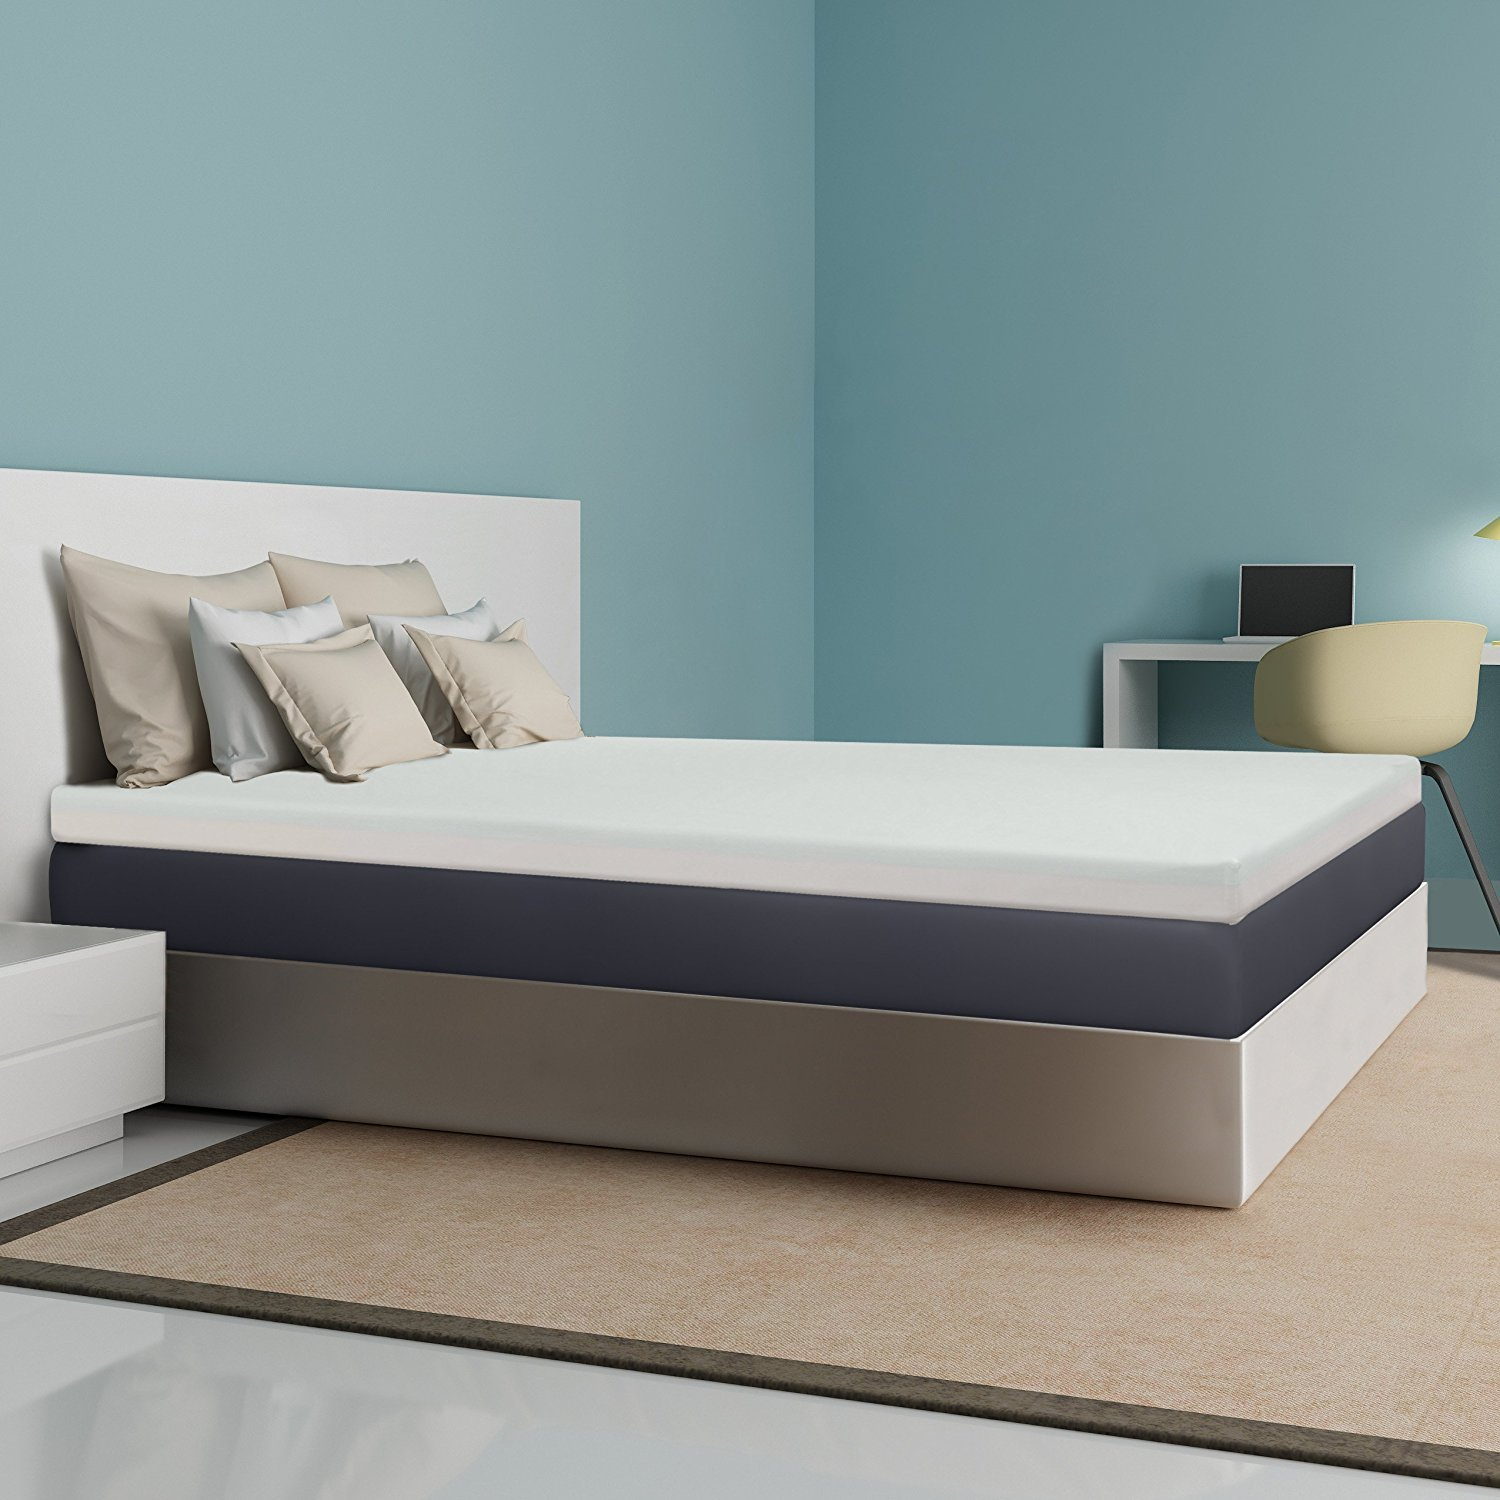 benefits the mattress of foam topper a memory buying best mattresses